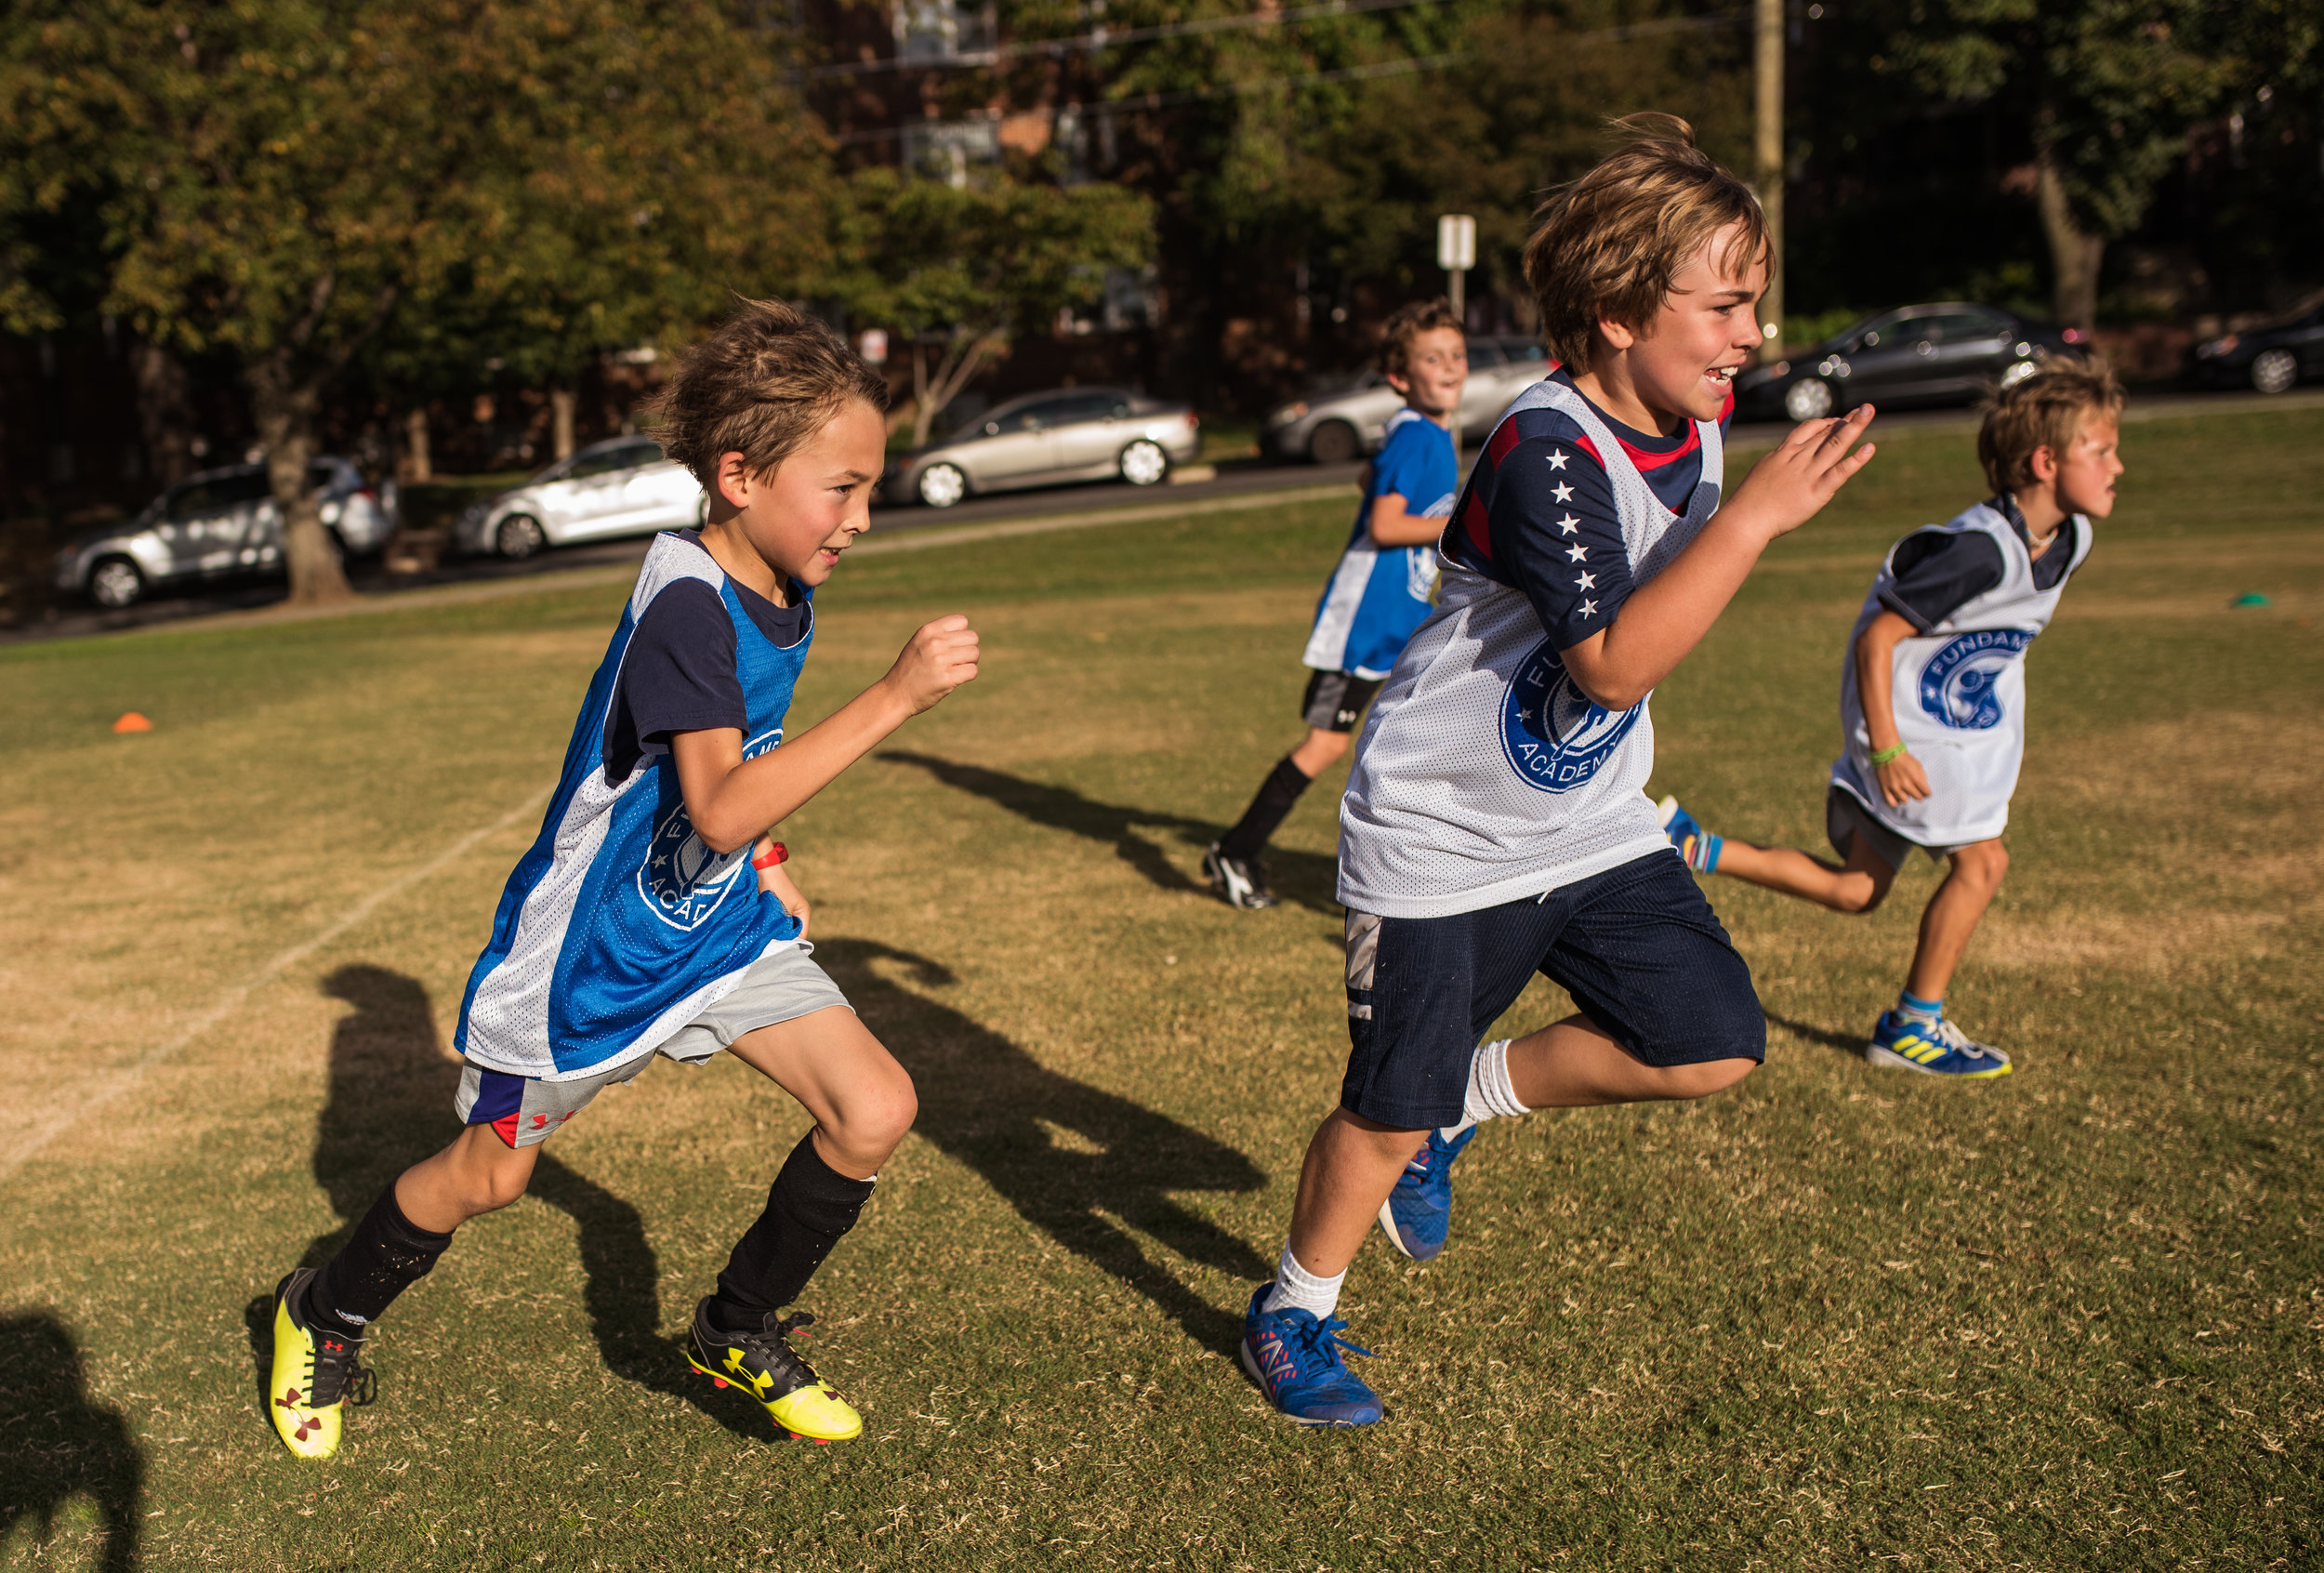 FunSports - Ages 7-10